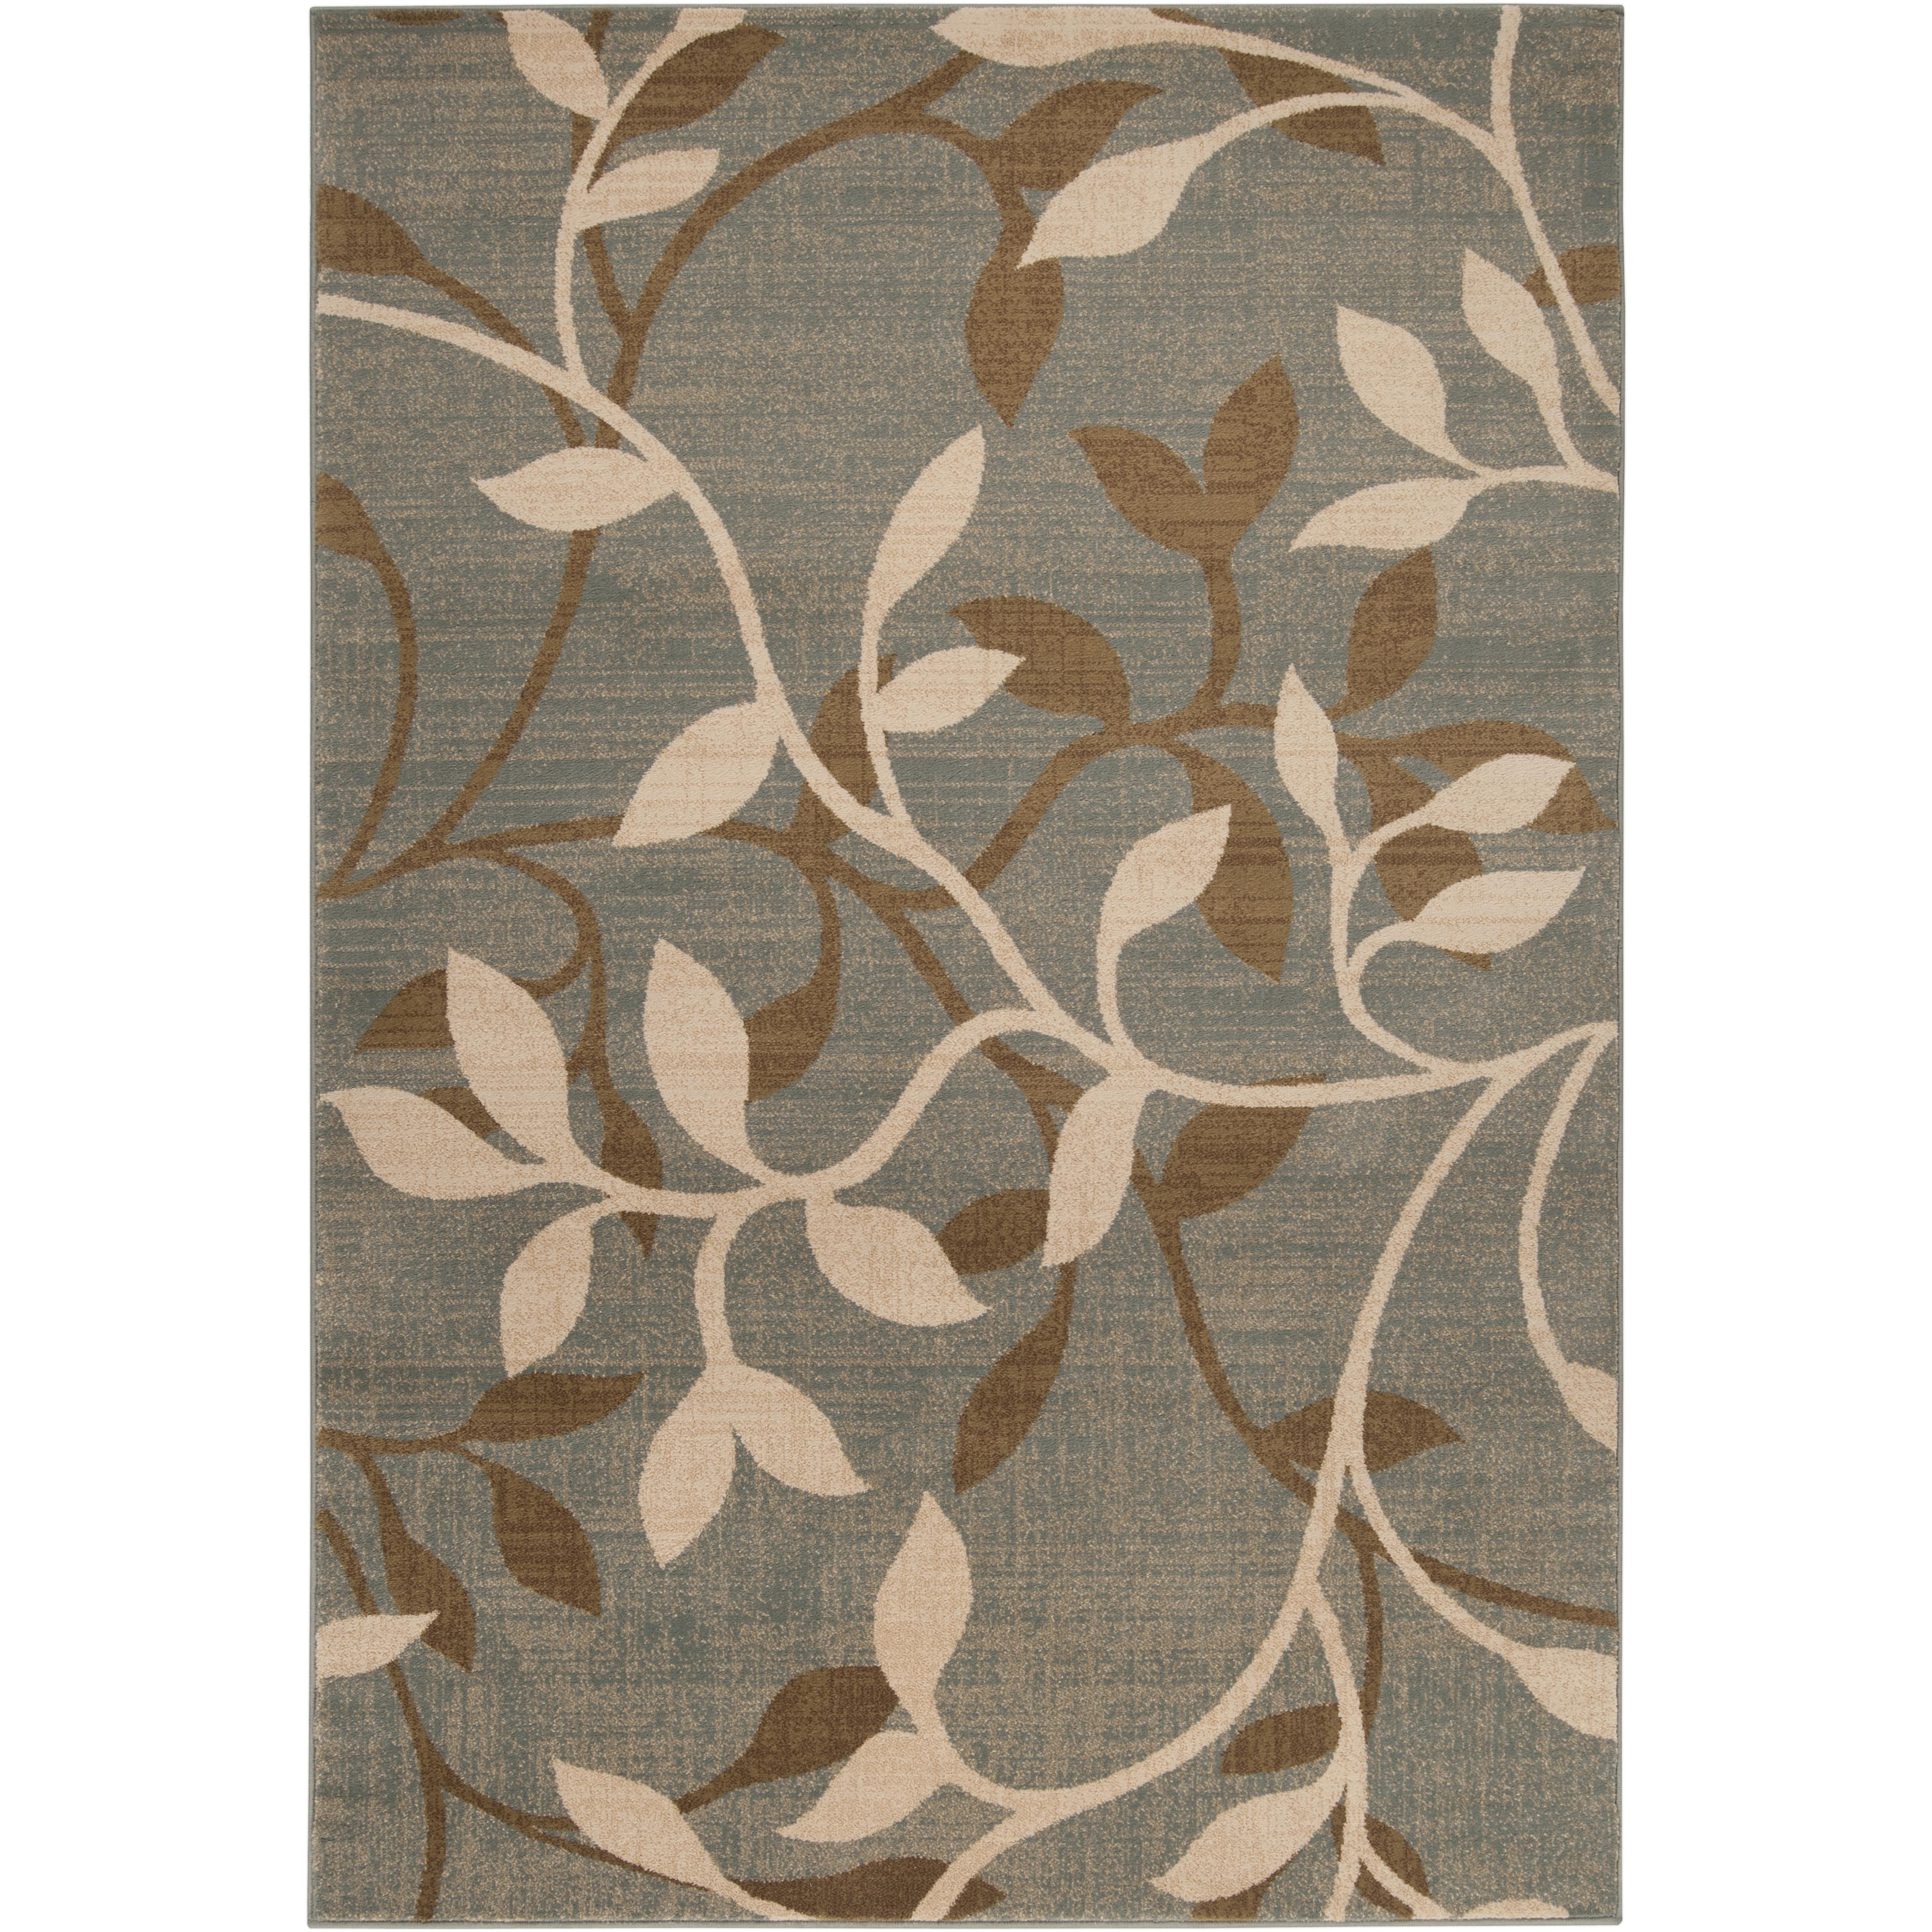 "Surya Rugs Riley 6'6"" x 9'8"" - Item Number: RLY5012-6698"